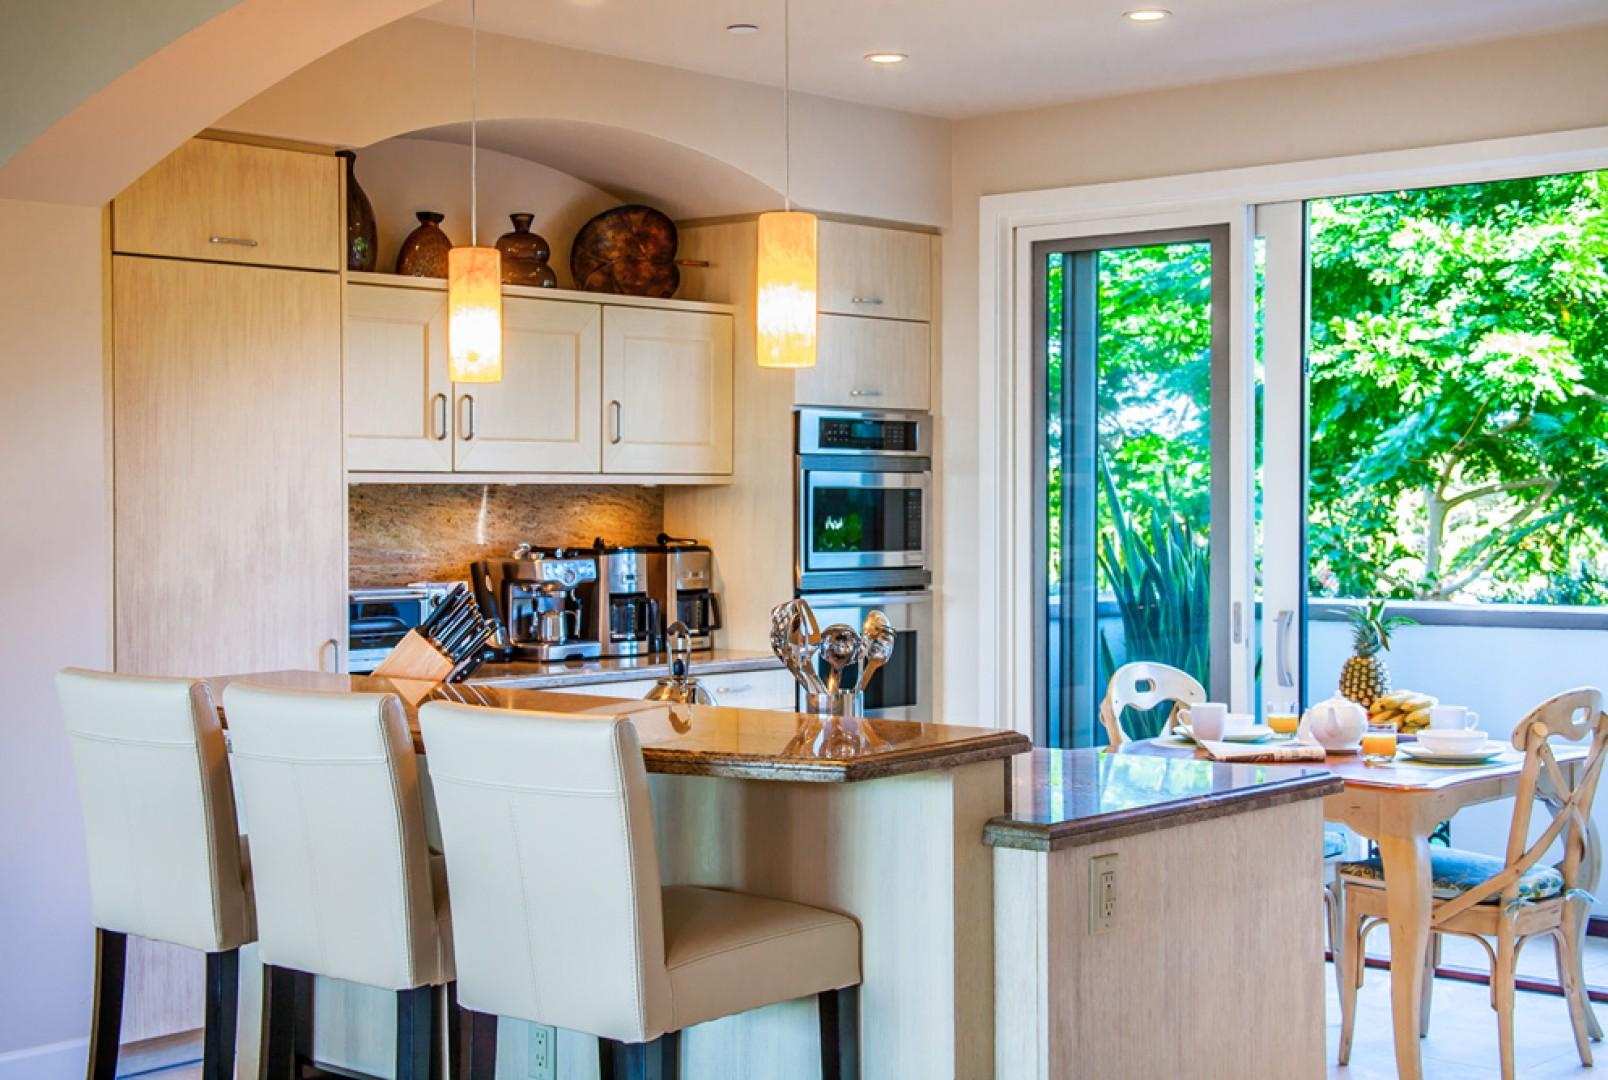 Blue Horizons K308 - Fully Equipped Gourmet Kitchen with Garden View, Espresso Maker - Many Deluxe Details